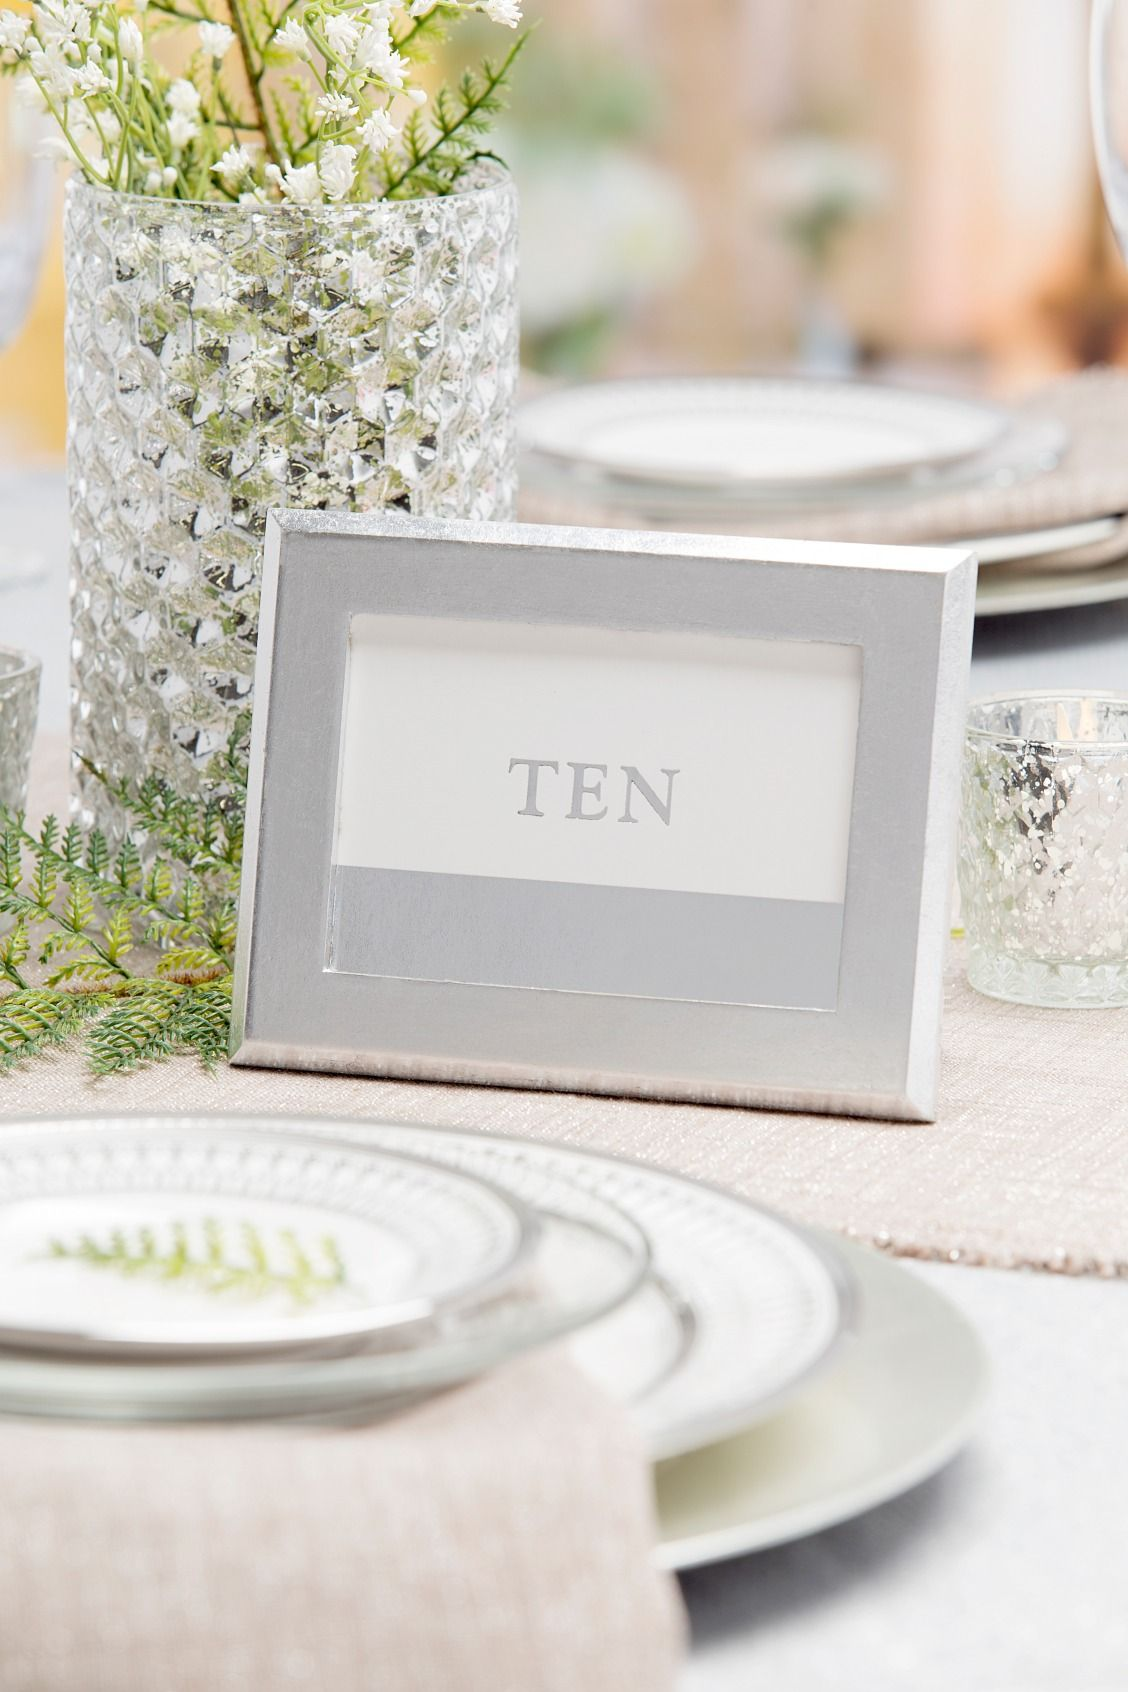 Create The Wedding Of Your Dreams With Diy Components From David Tutera And Michaels Decor To Special Bridal Accessories Right Touch For